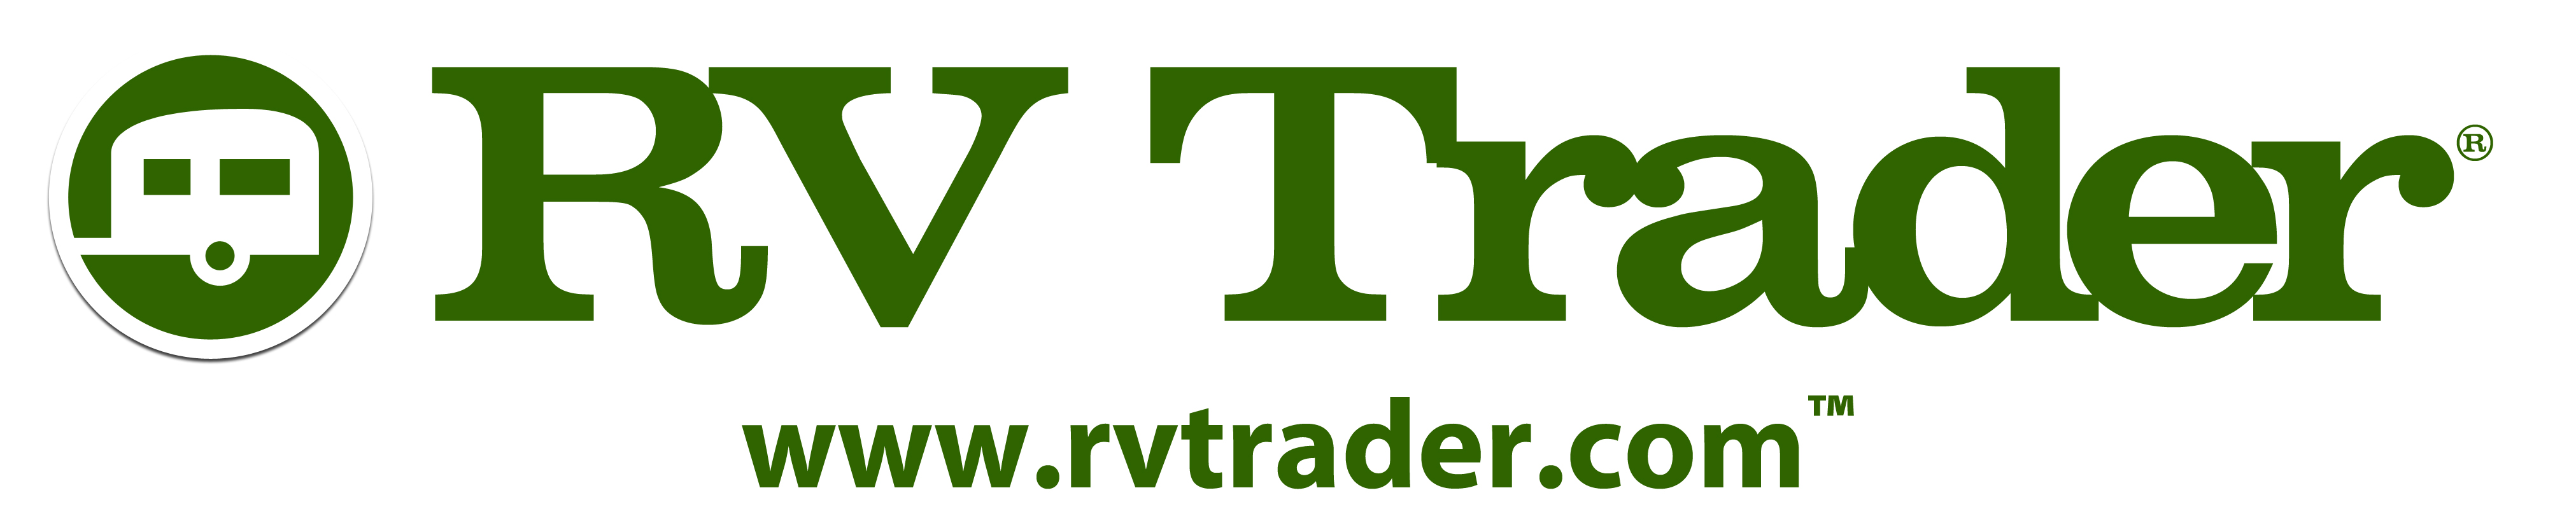 Rv Trader Online >> Rv Trader Com Introduces Mobile Featured Ads And Premium